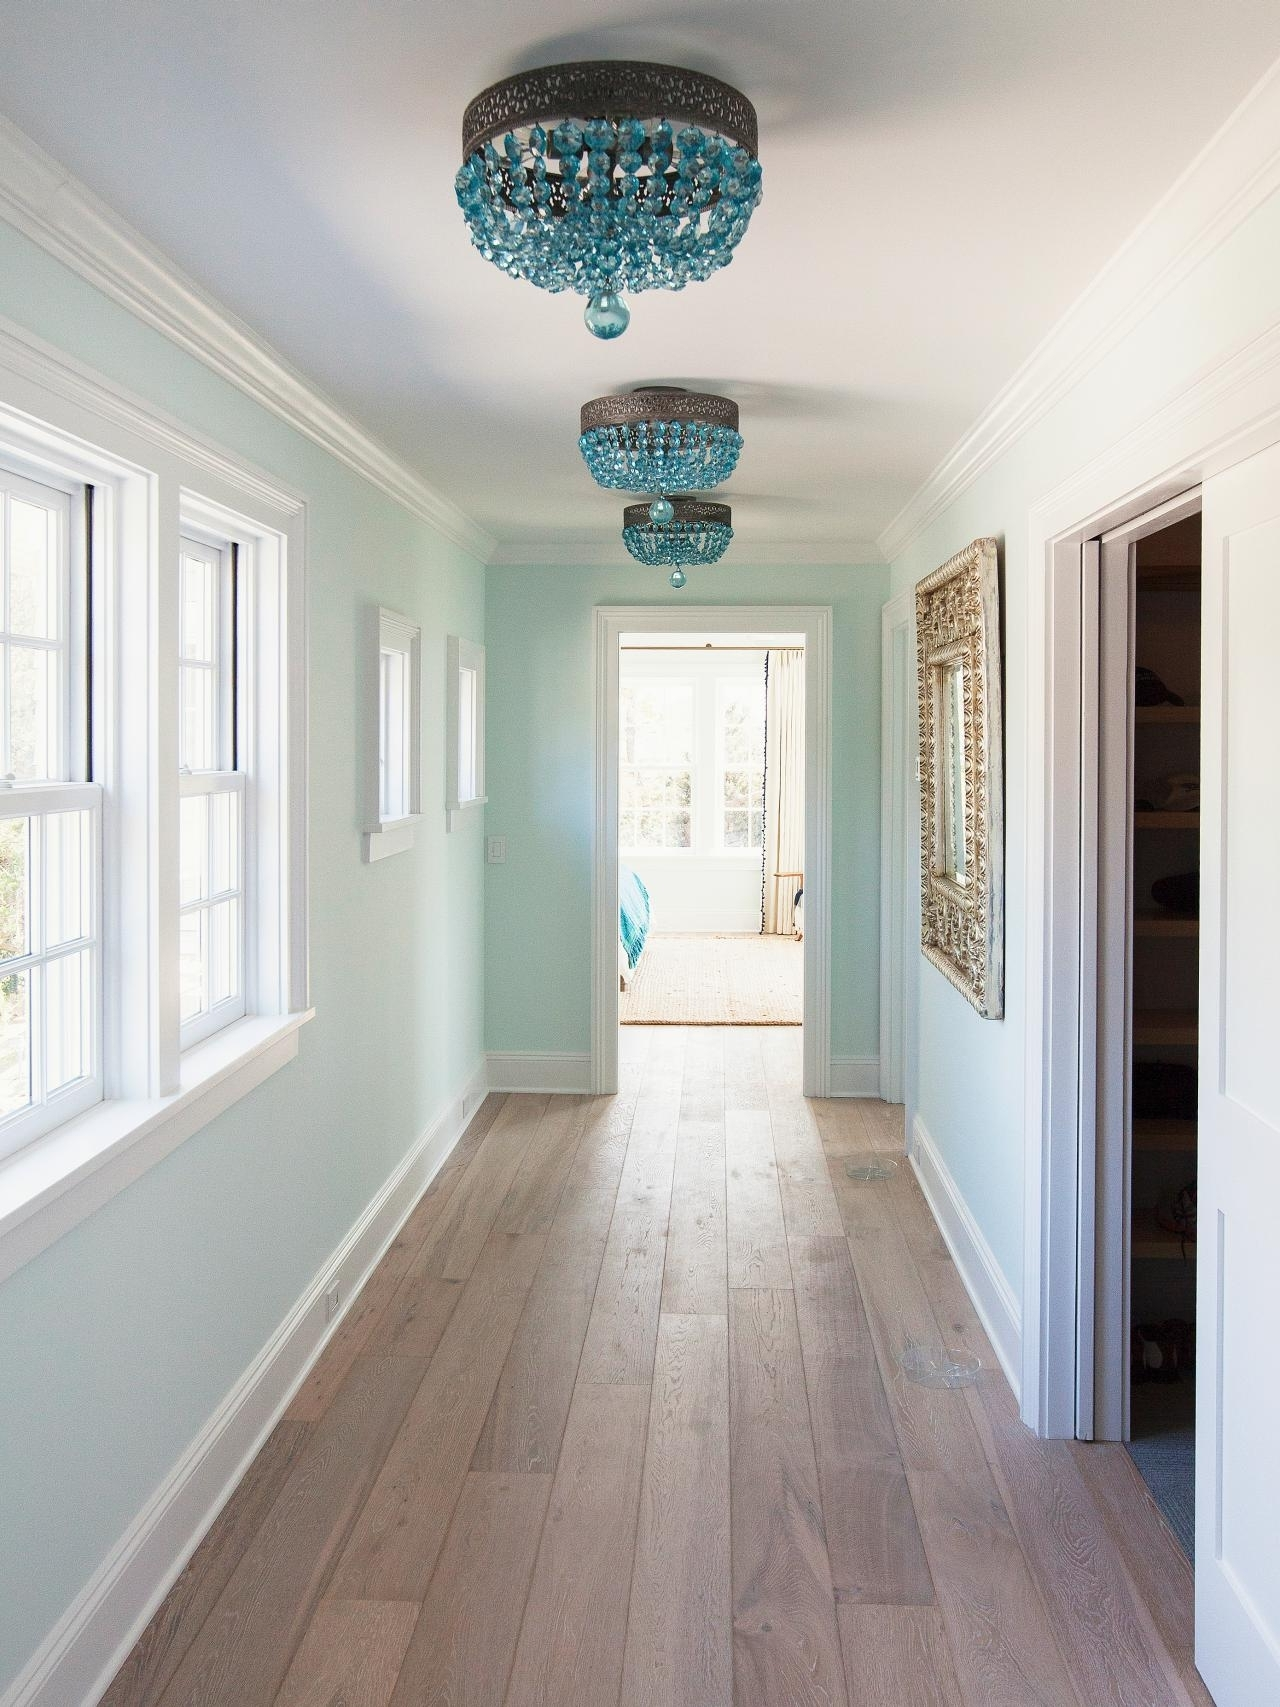 Most Recent Chandeliers For Hallways Within Interior (View 11 of 15)